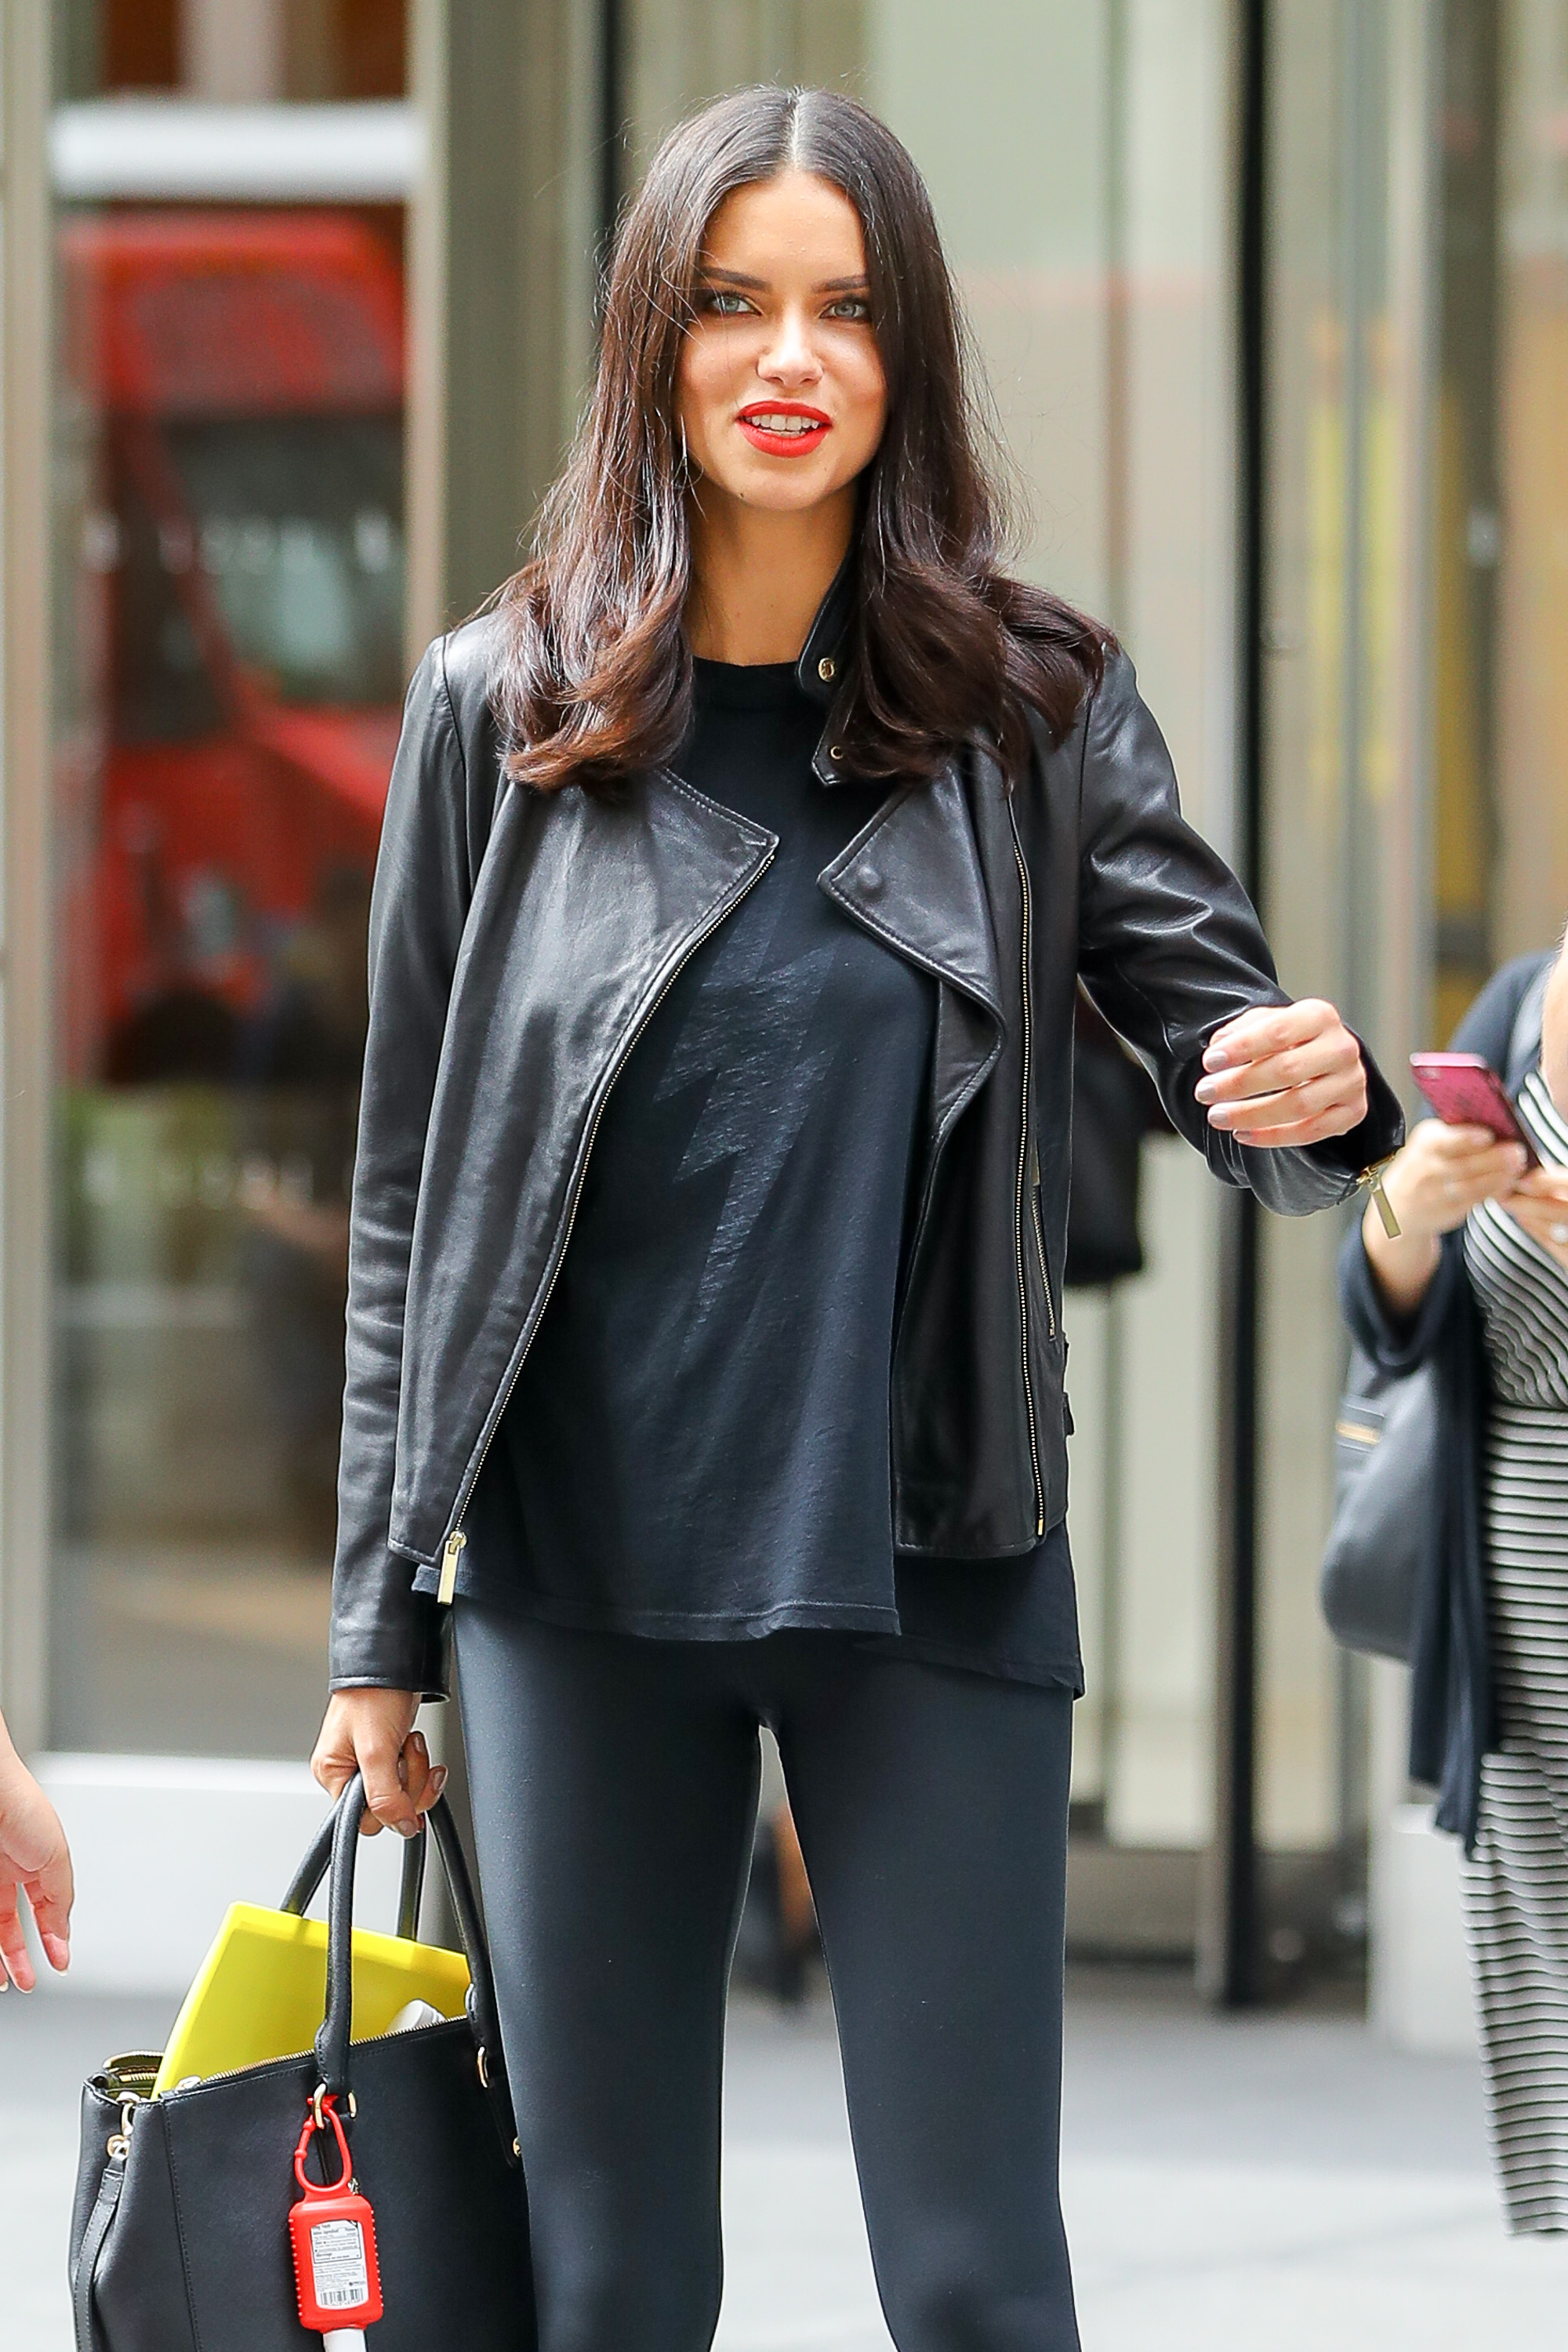 Adriana Lima is seen leaving SiriusXM studios in New York City, New York. <P> Pictured: Adriana Lima <B>Ref: SPL1583236  180917  </B><BR/> Picture by: Felipe Ramales / Splash News<BR/> </P><P> <B>Splash News and Pictures</B><BR/> Los Angeles:310-821-2666<BR/> New York:212-619-2666<BR/> London:870-934-2666<BR/> <span id=